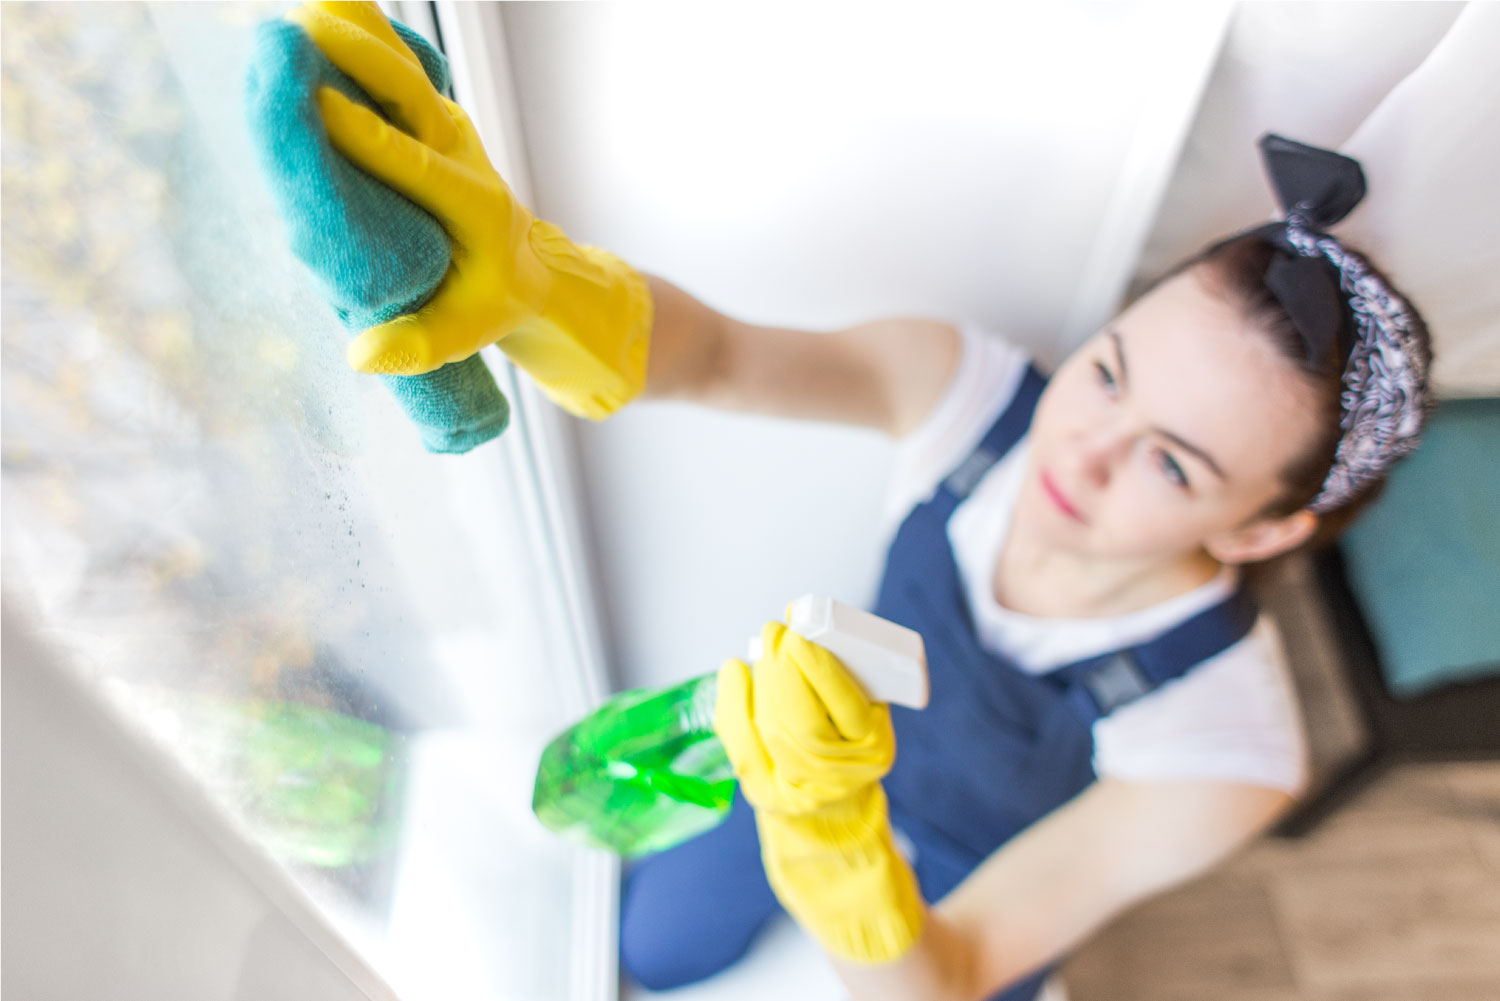 a young woman cleaning a window